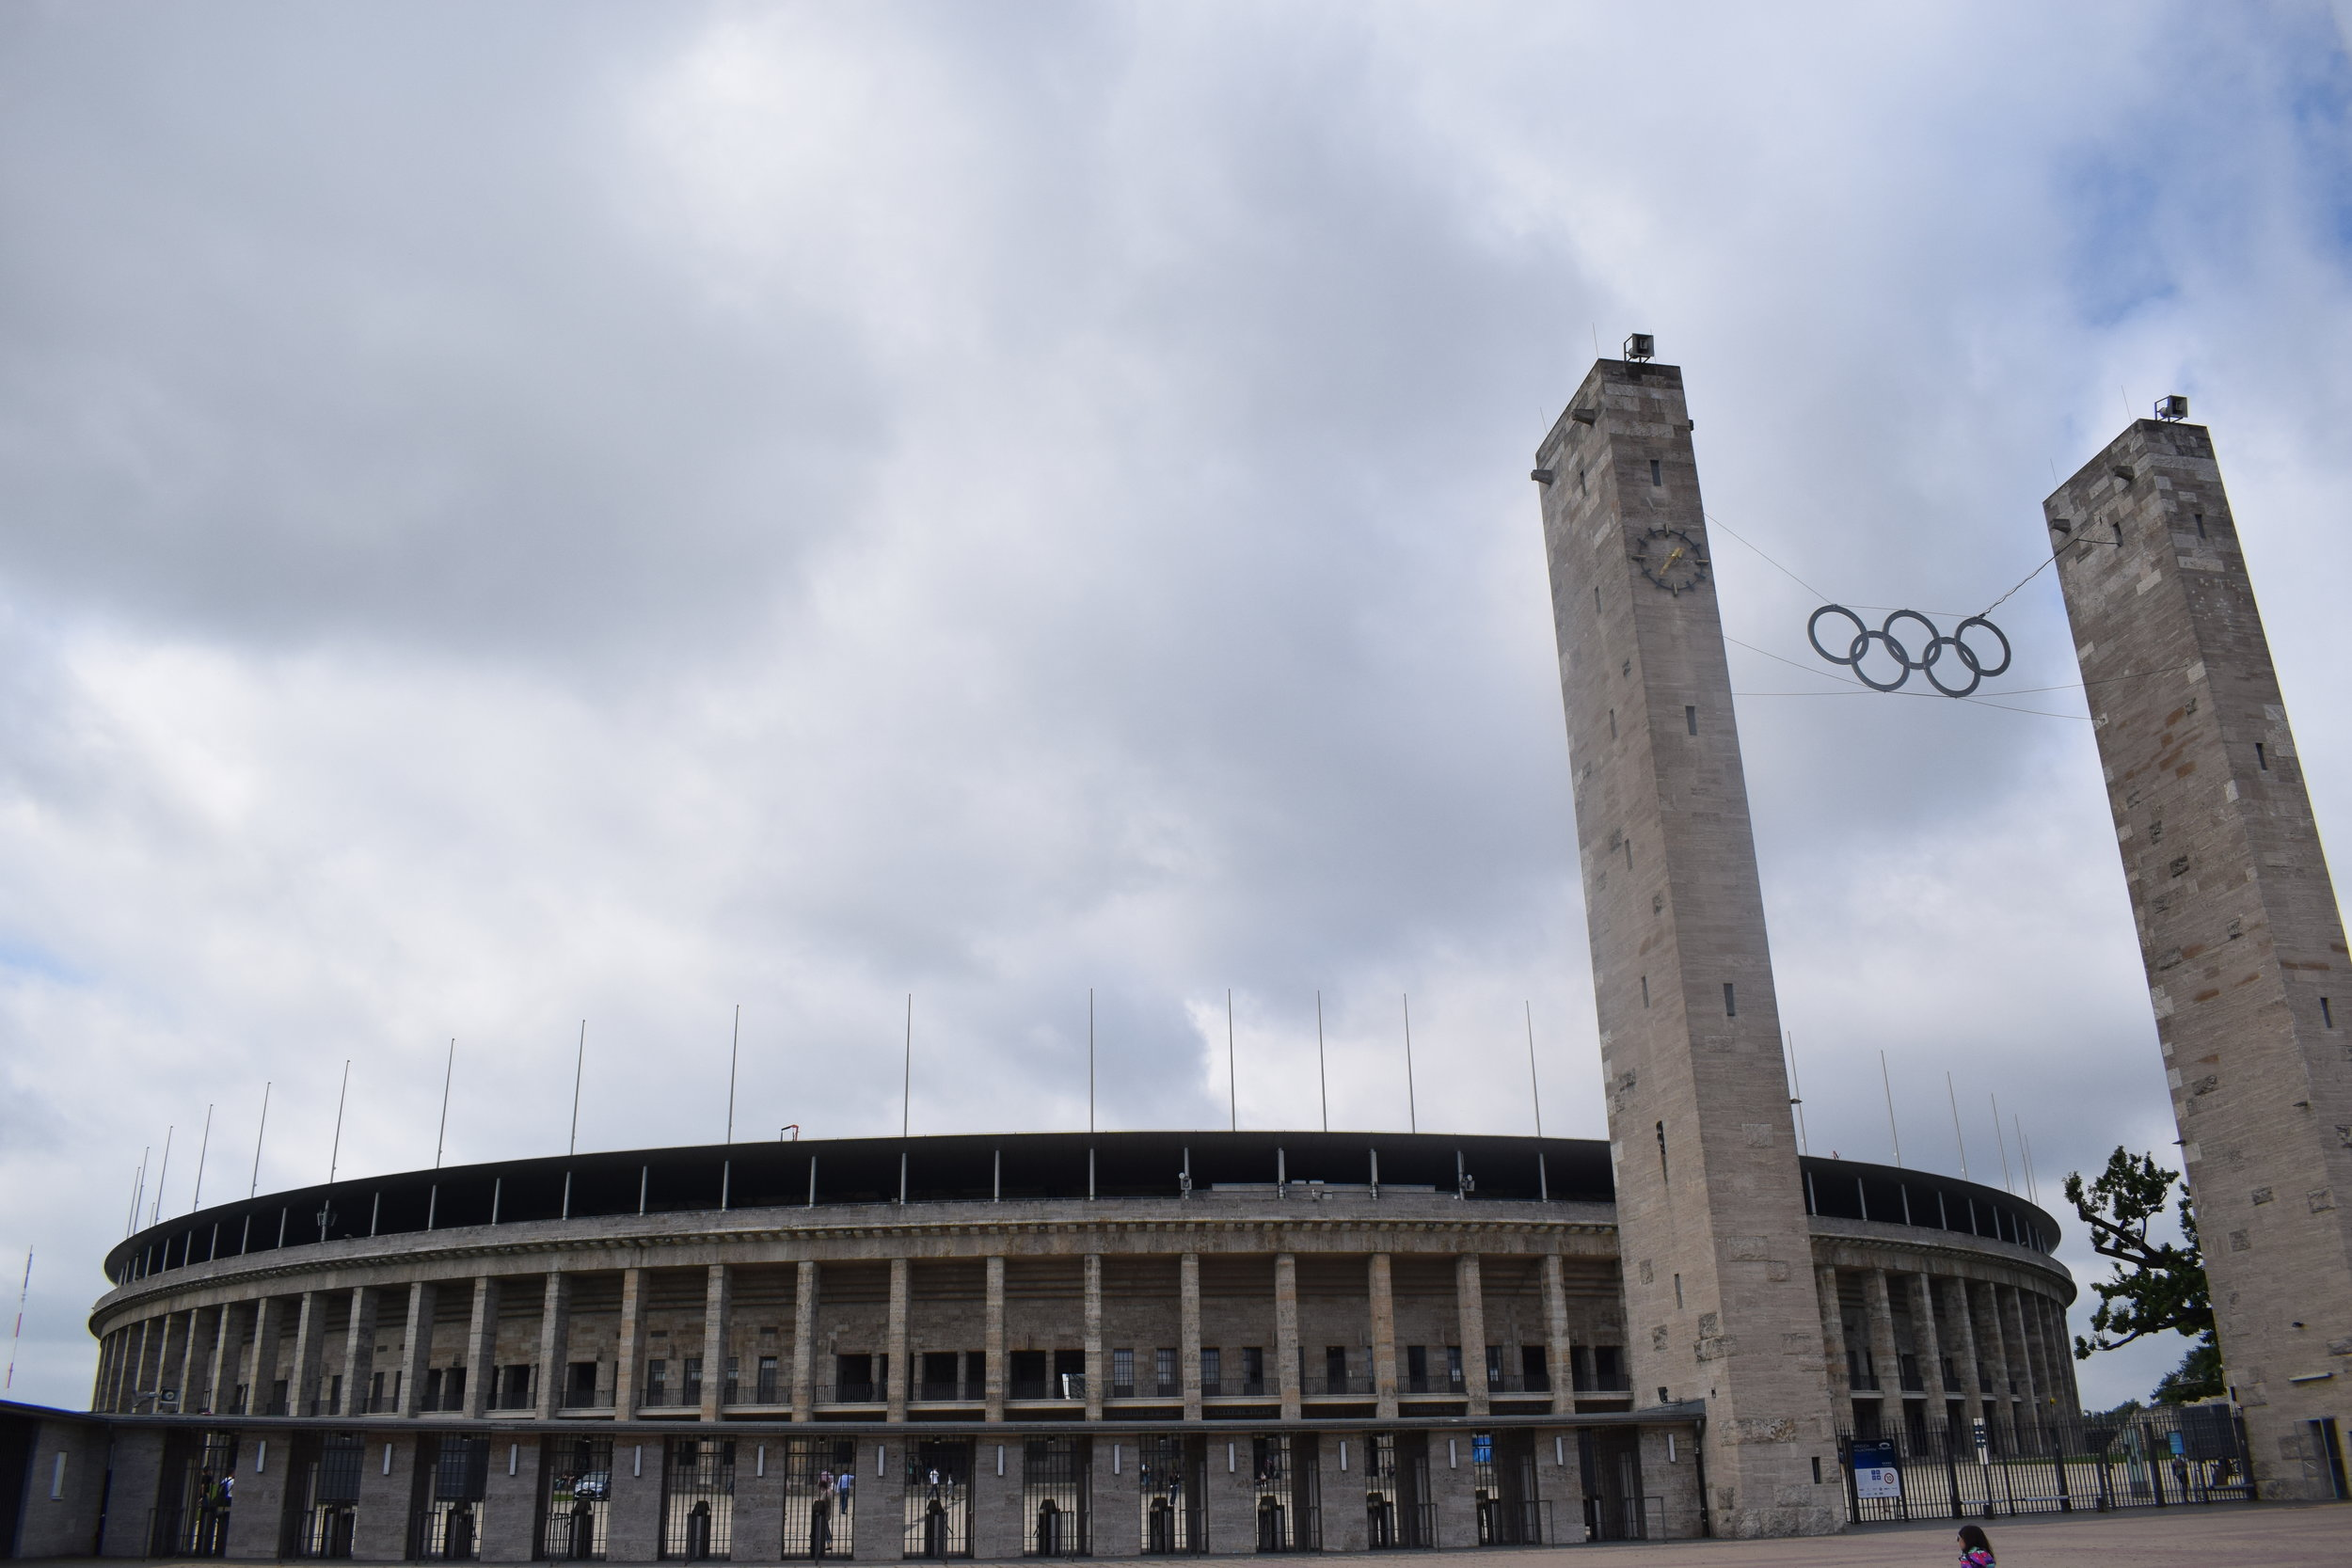 The exterior of the Olympiastadion.